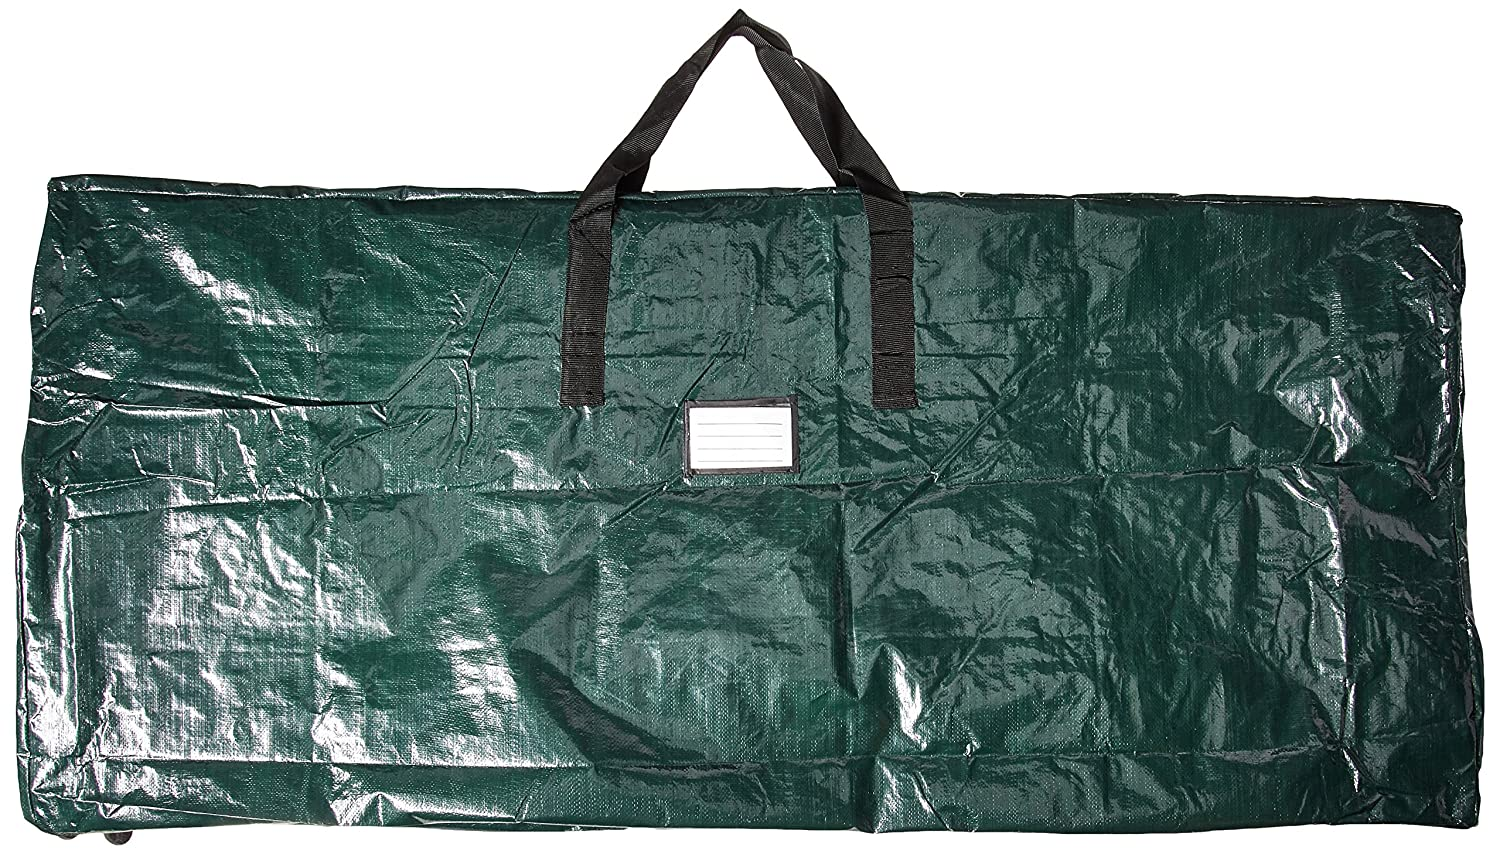 christmas tree storage bags 2 extra large green new 610708147565 ebay. Black Bedroom Furniture Sets. Home Design Ideas